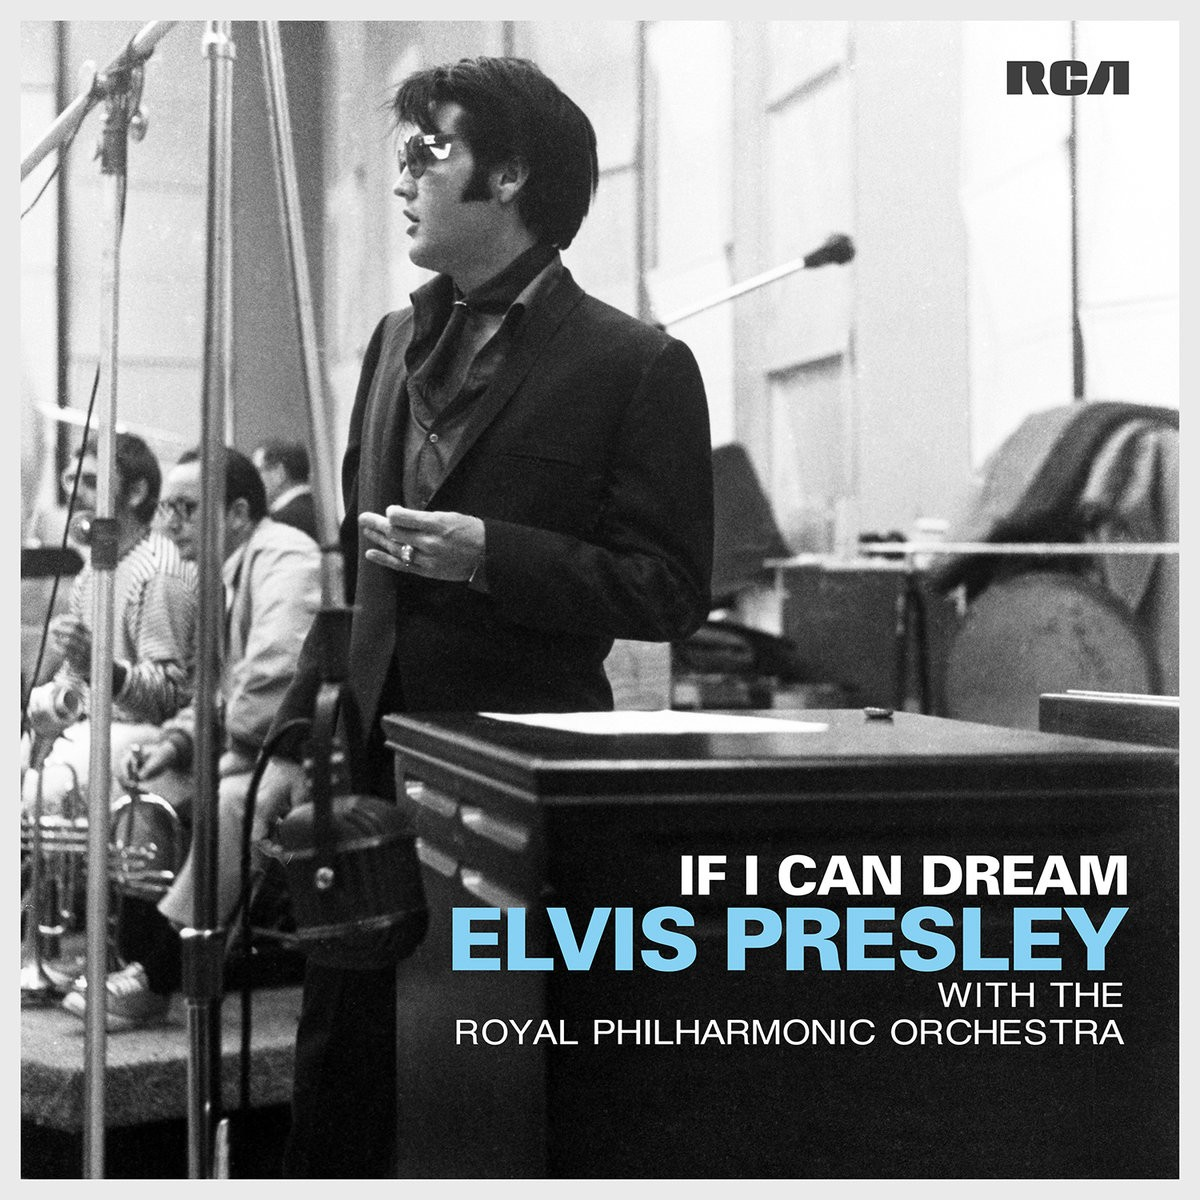 Elvis Presley With The Royal Philharmonic Orchestra - If I Can Dream CD - CDRCA7473